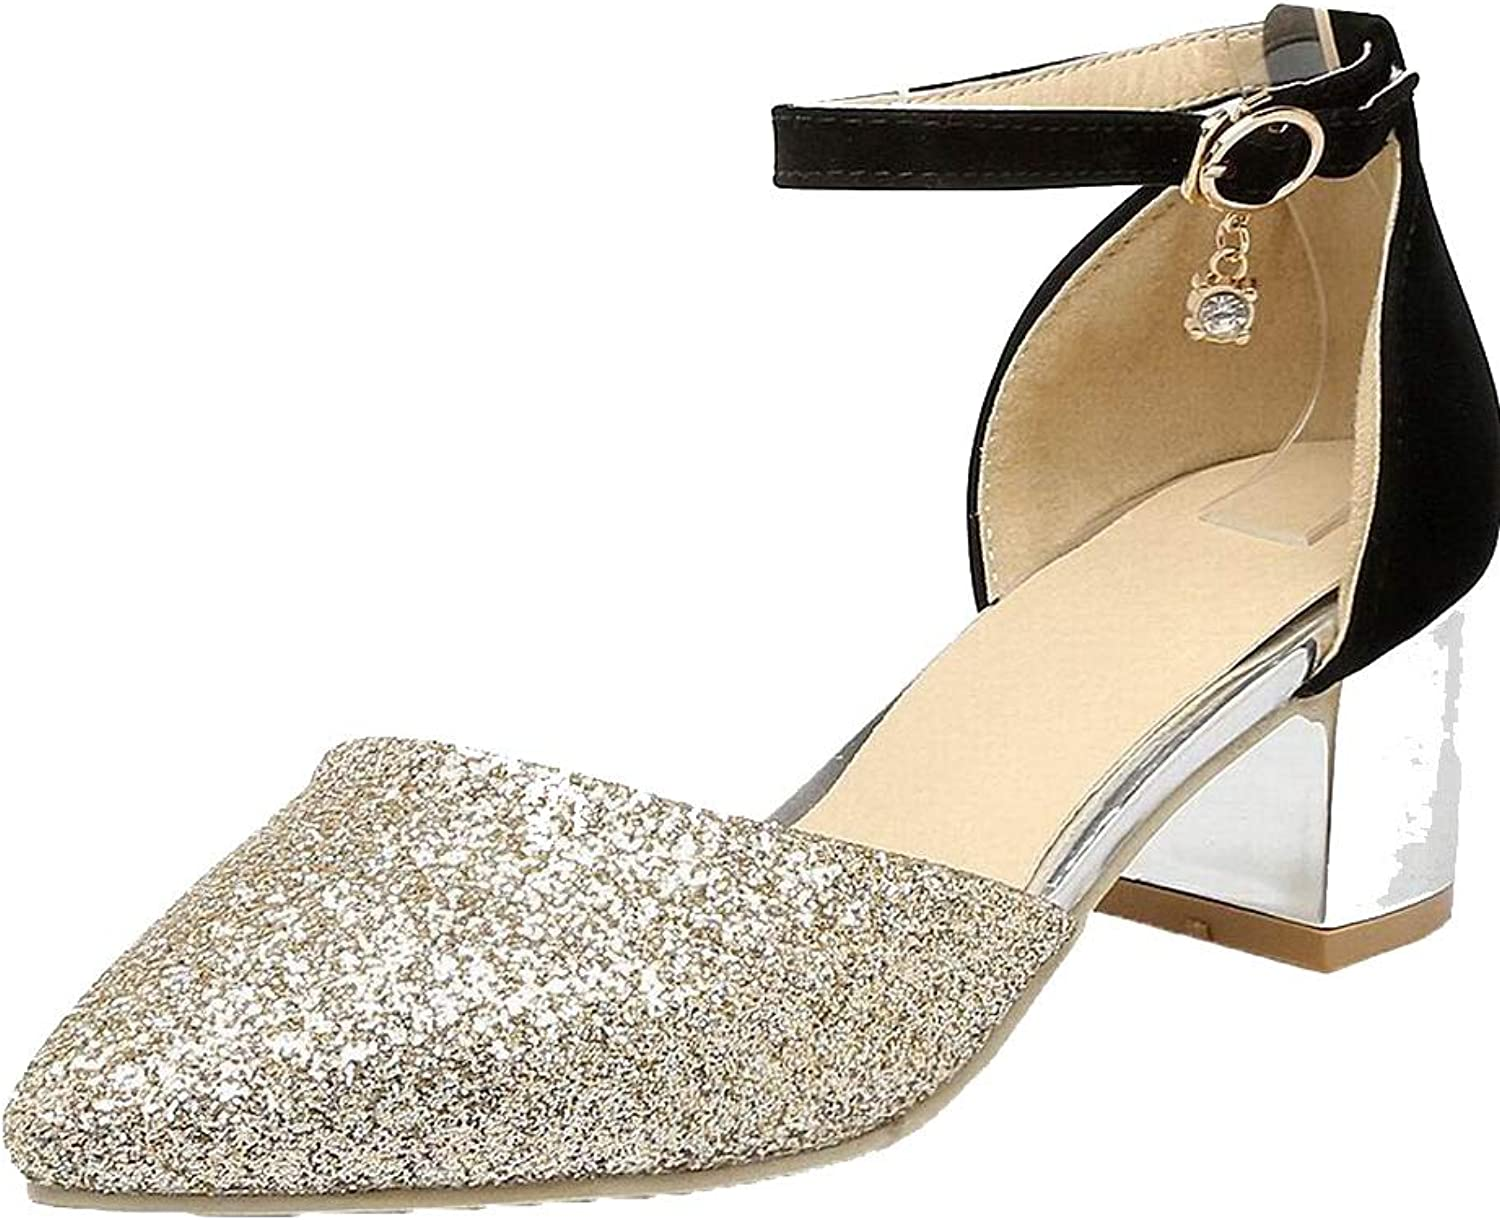 WeenFashion Women's Kitten-Heels Pointed-Toe Assorted color Buckle Sandals, AMGLX010417